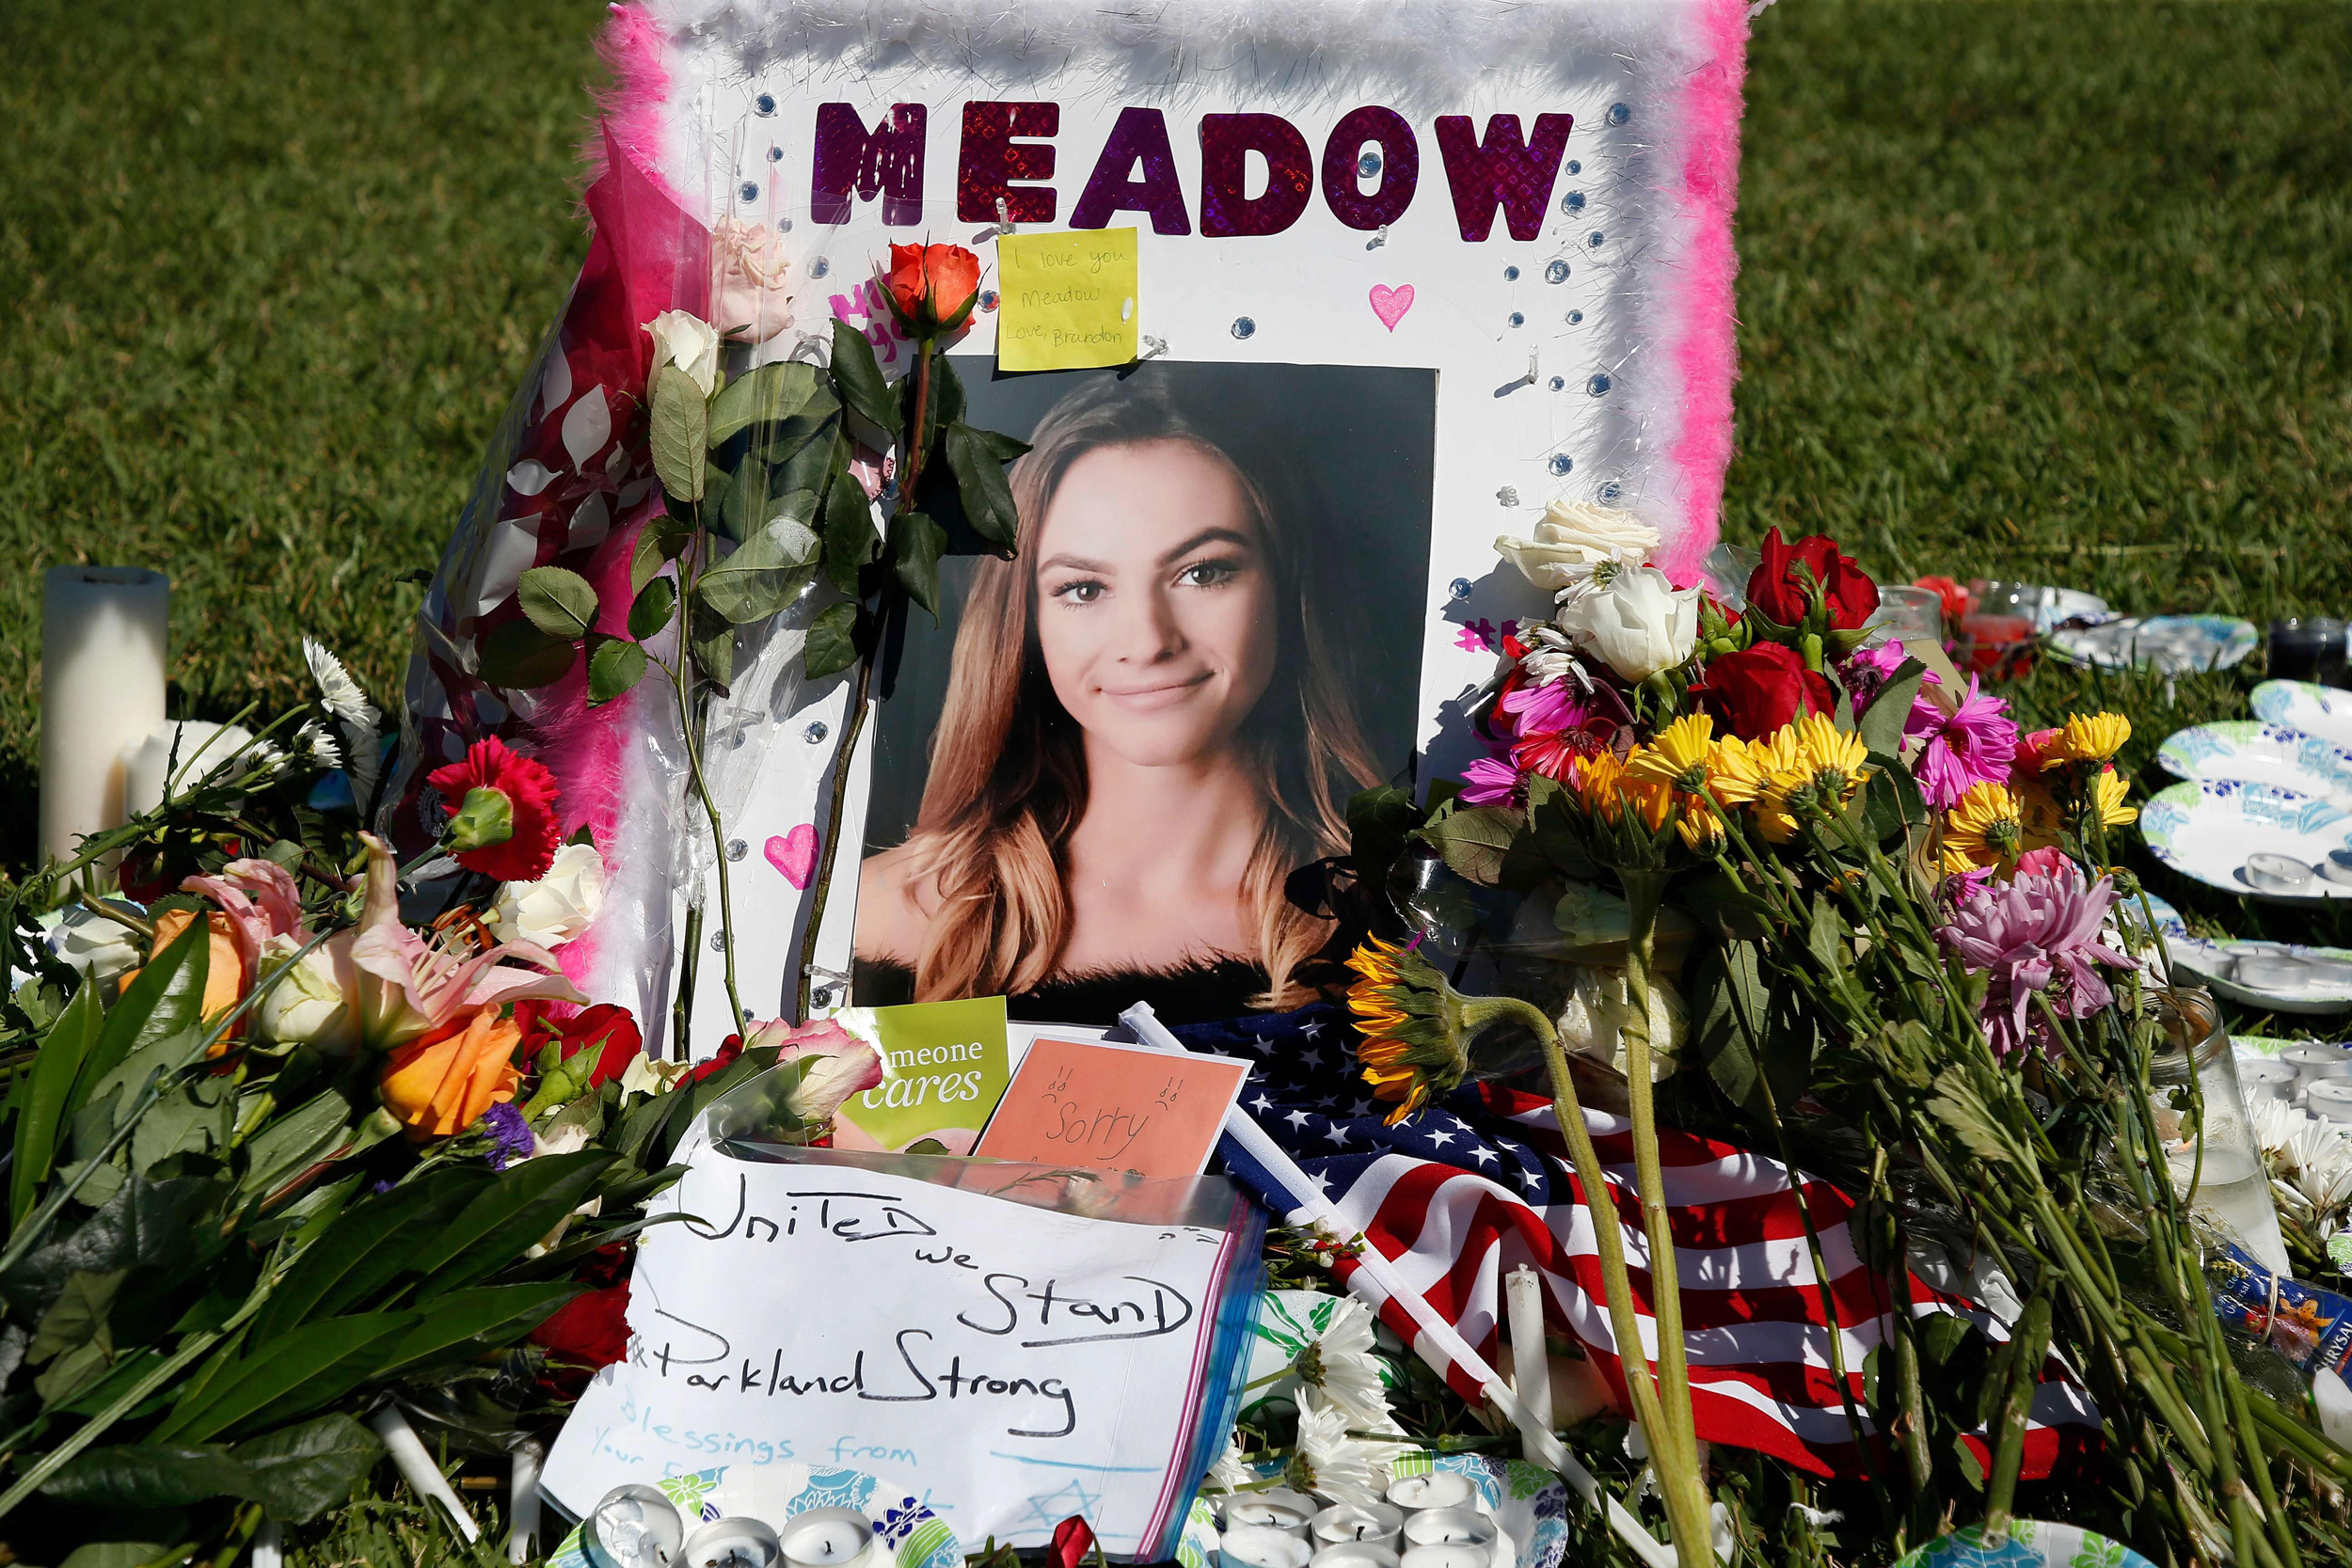 Image: Memorial for Meadow Pollack